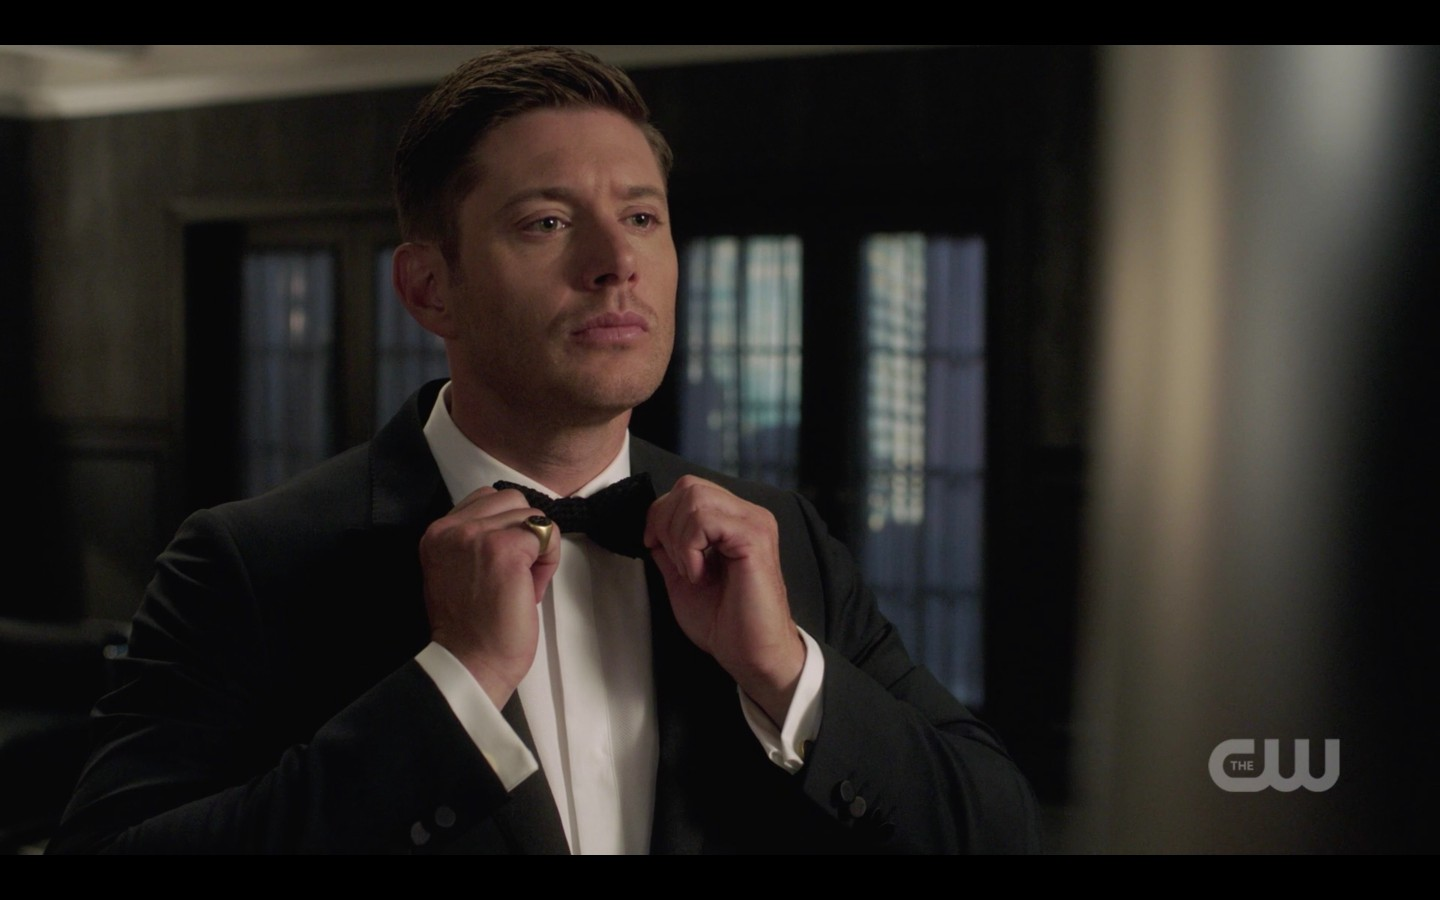 dean winchester suiting up in tux michael gods monsters